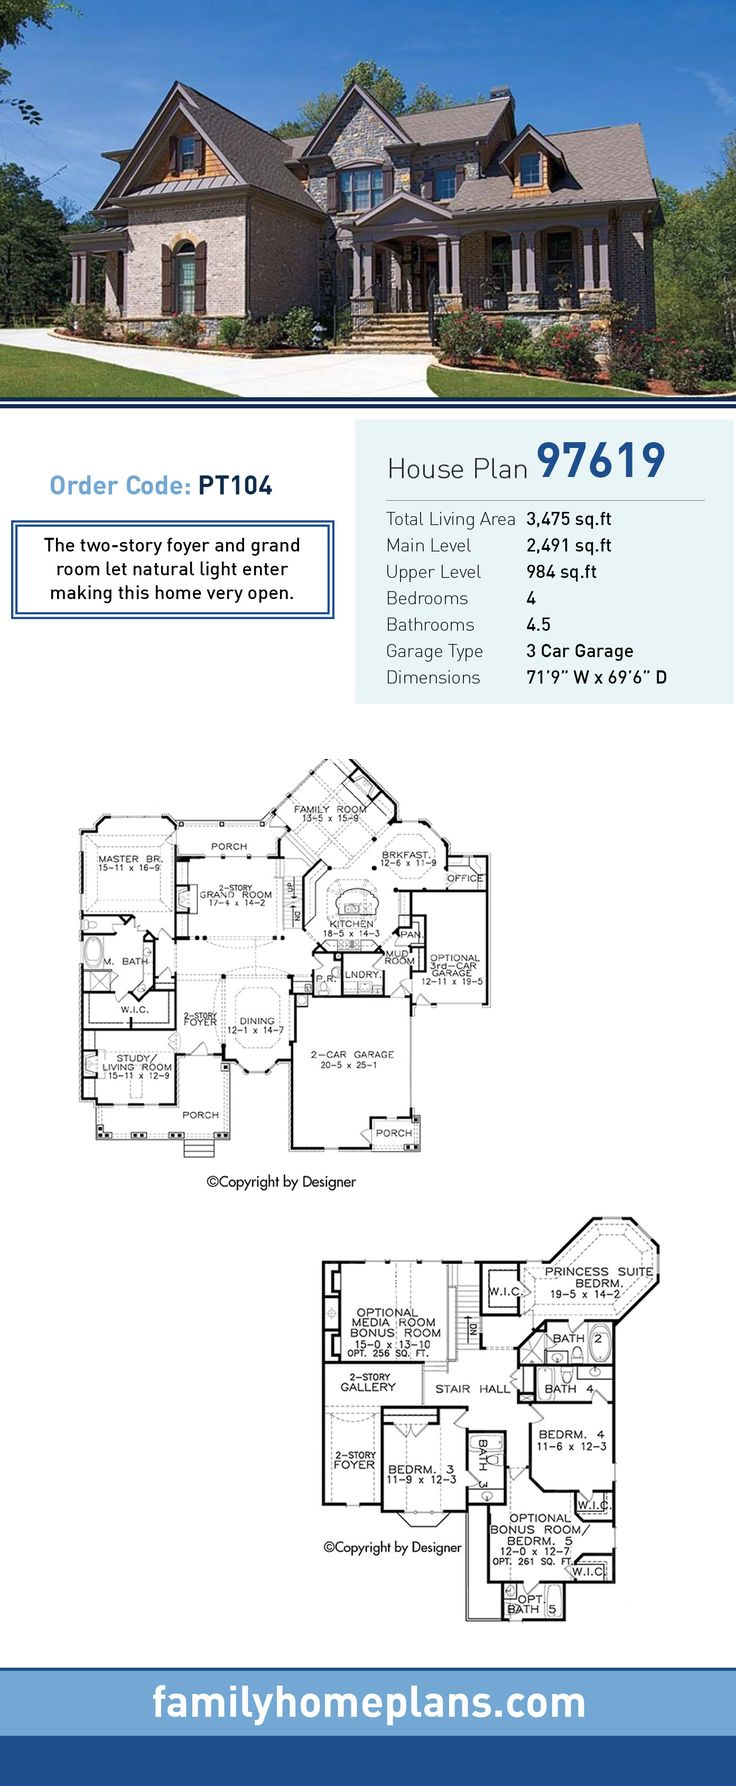 European house plan 97619 total living area 3 475 sq ft for European house floor plans